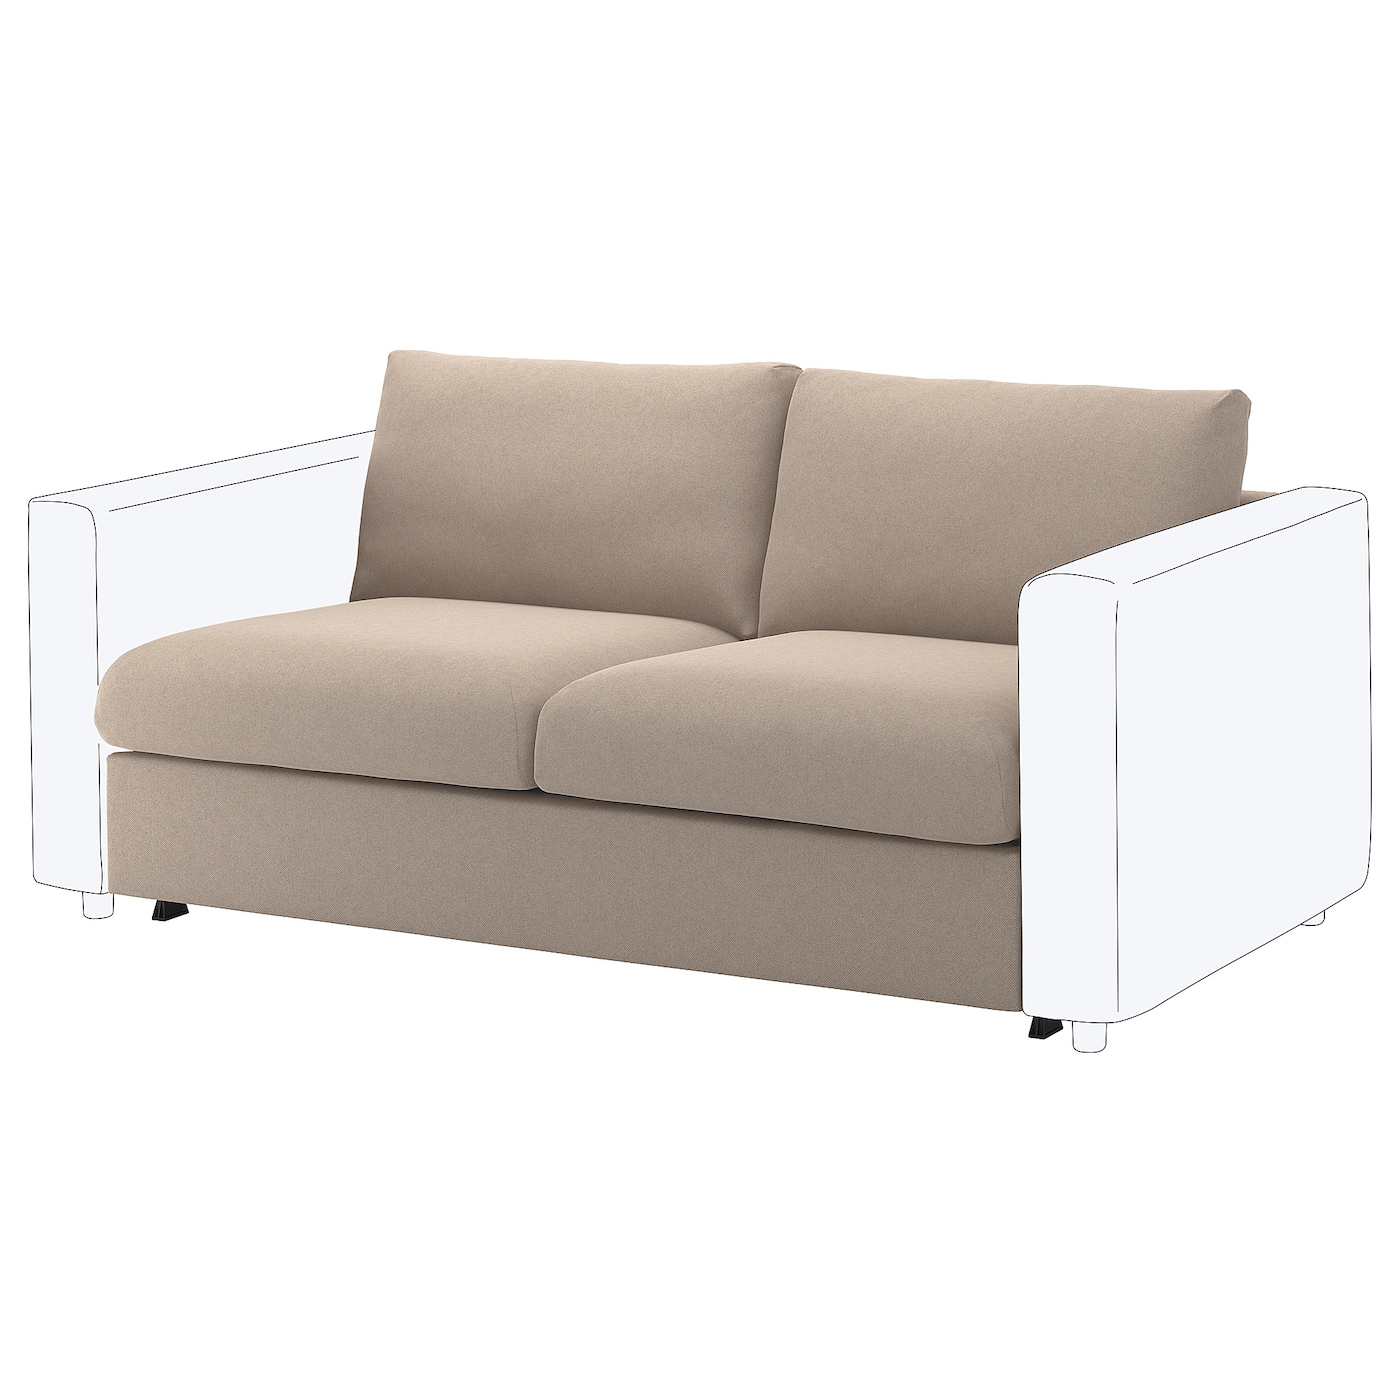 IKEA VIMLE 2-seat sofa-bed section